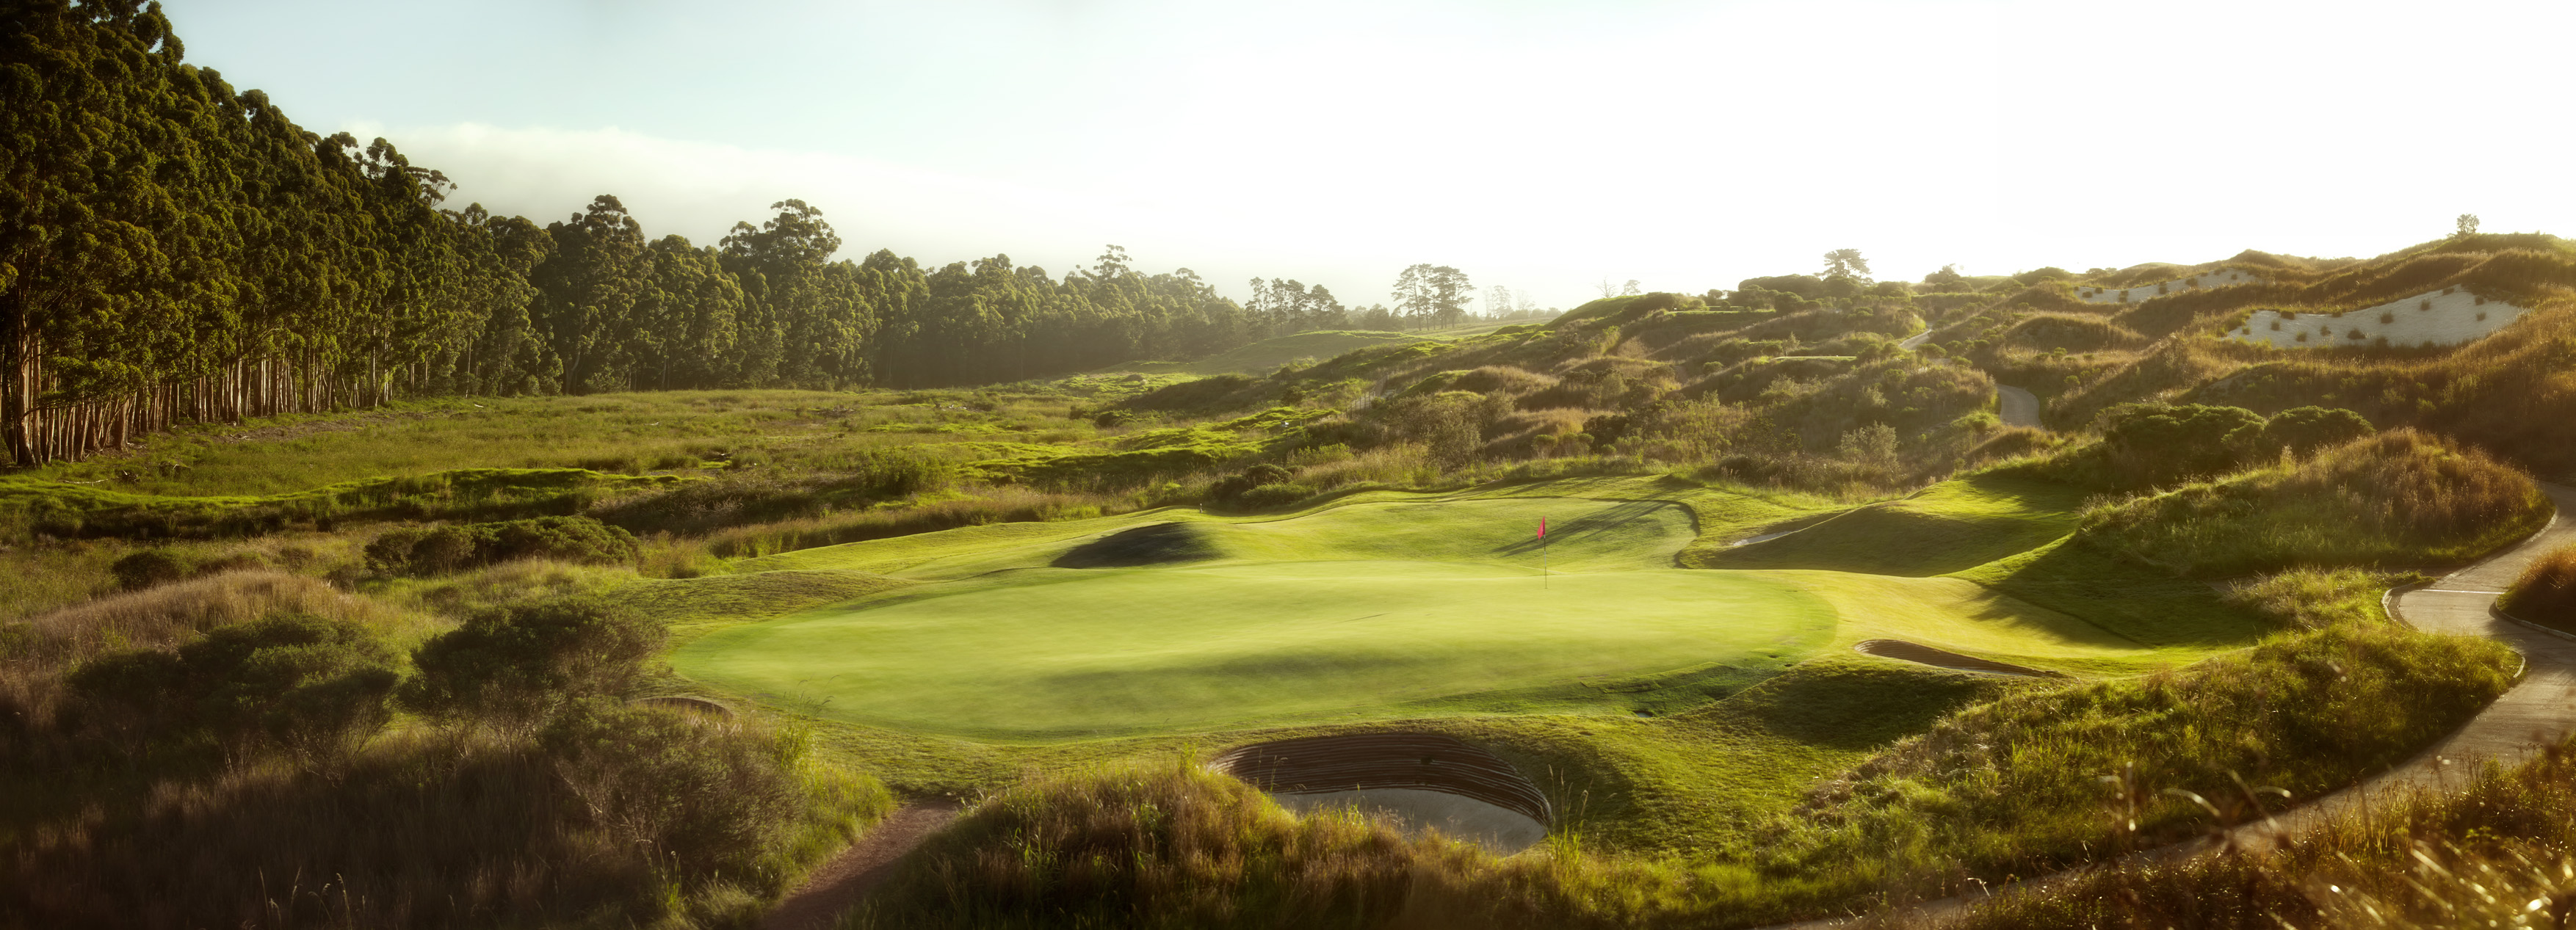 There Are No Missing Links at Fancourt's Crown Jewel